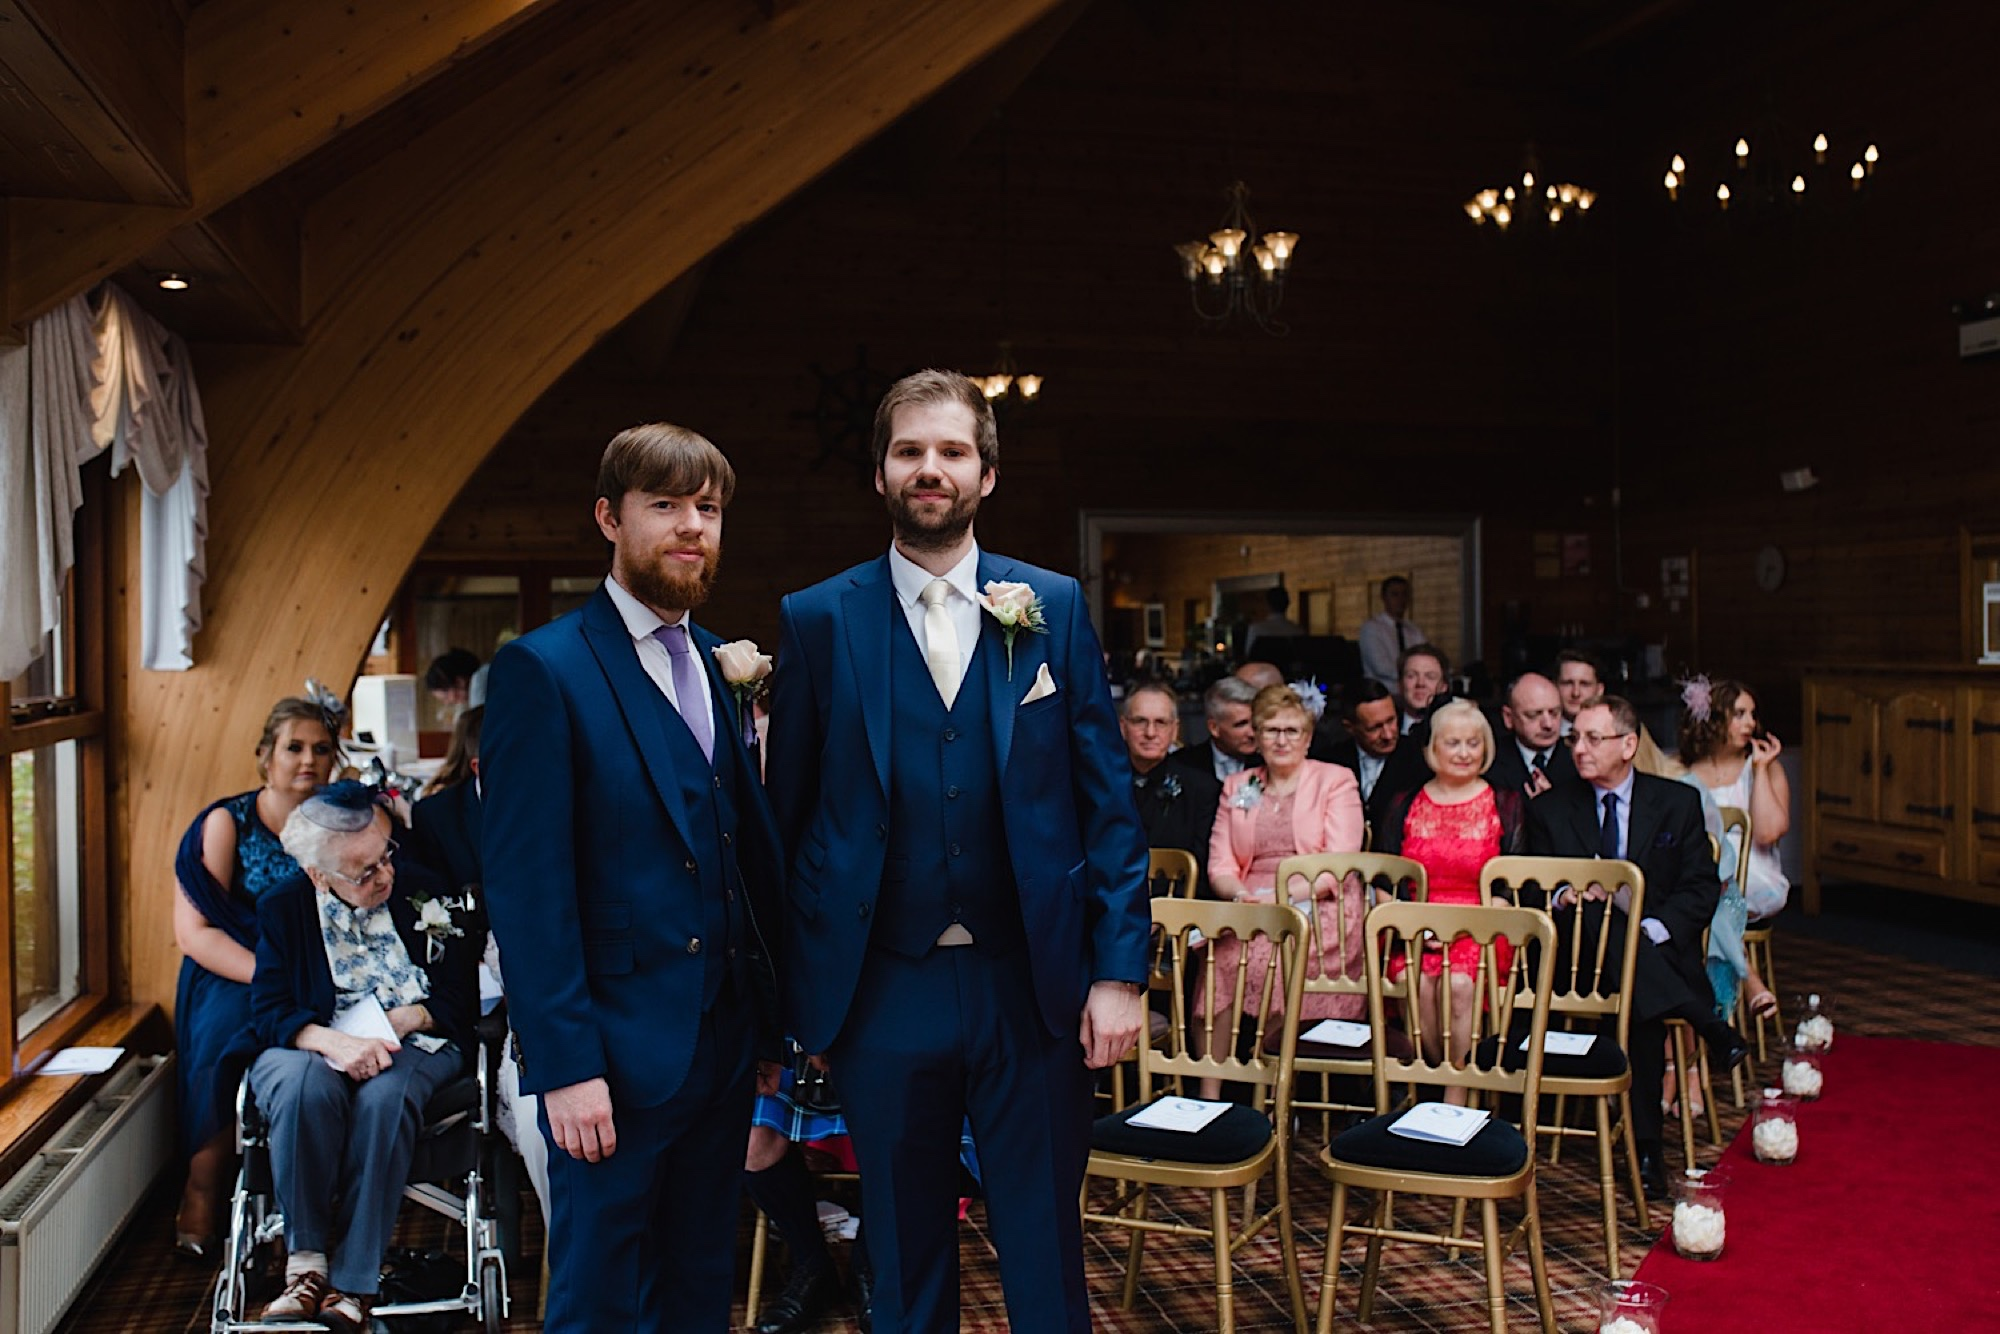 groom and best man awaiting the bride